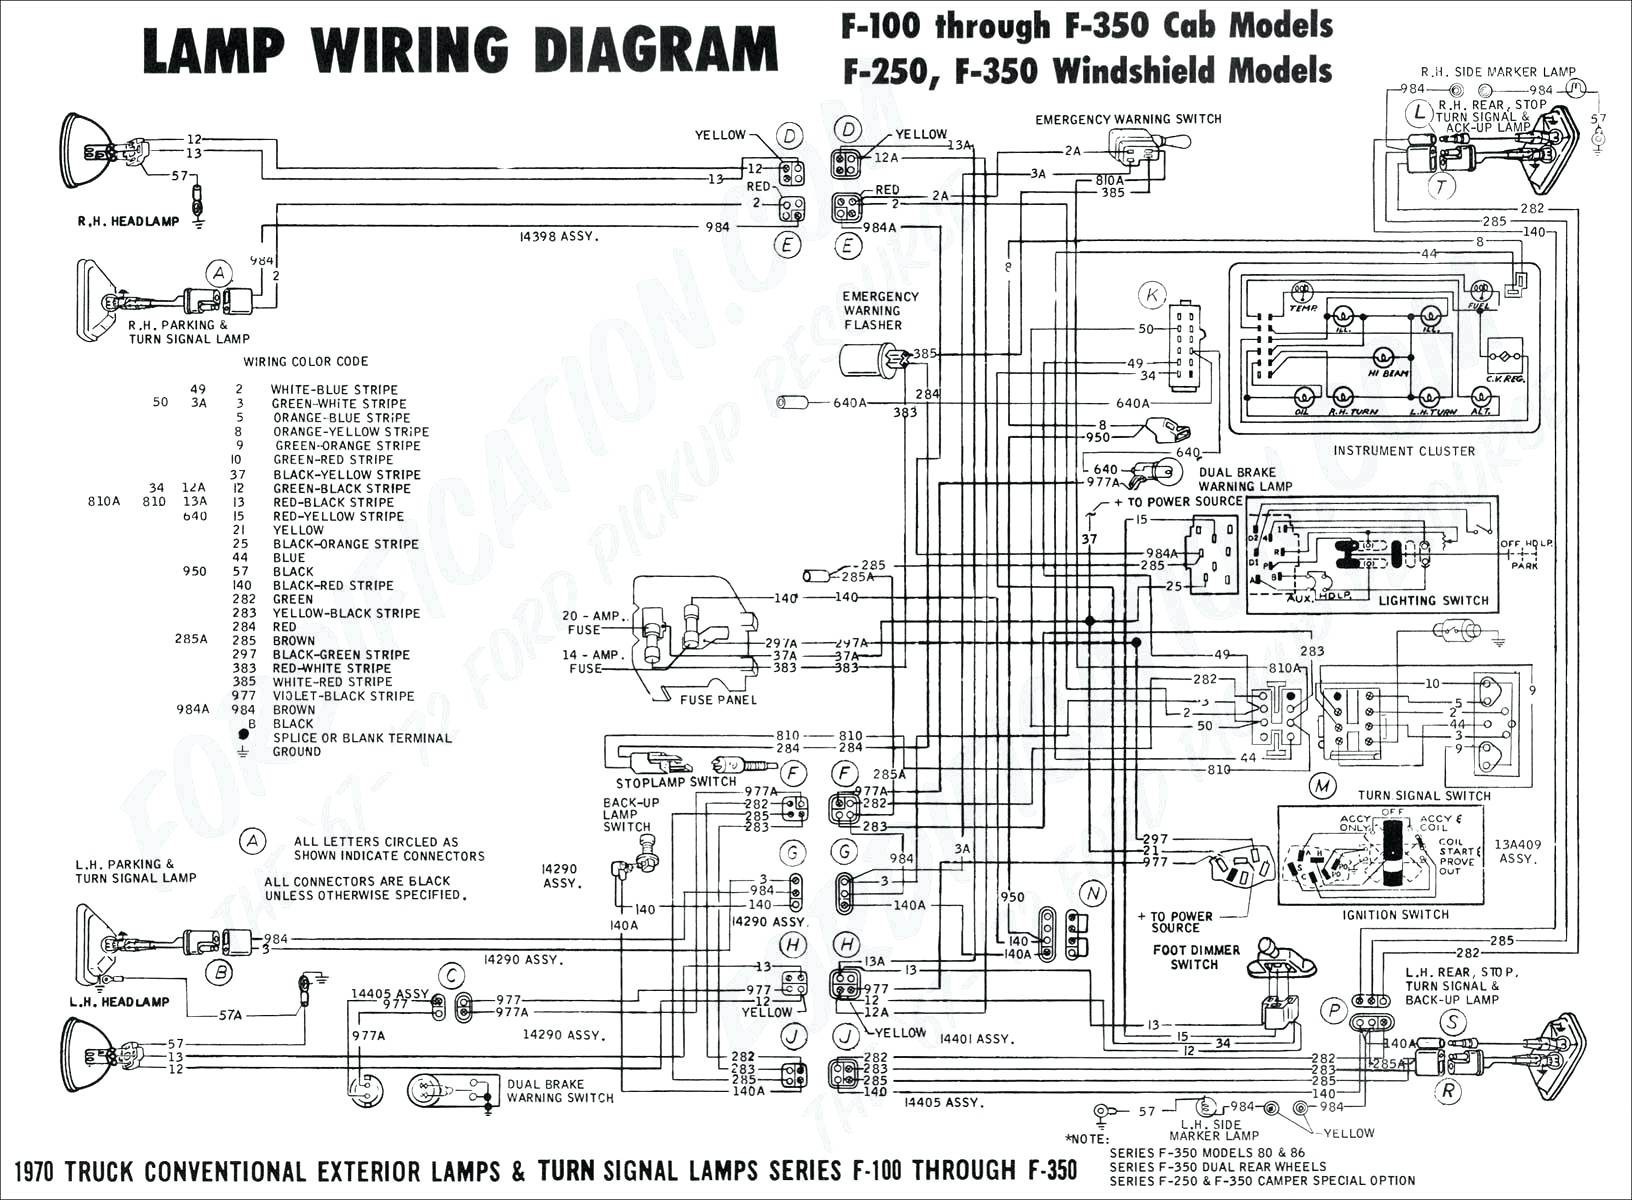 Truck Drivetrain Diagram Chevy Silverado Wiring Diagram for 1997 Best Truck Radio Suburban Of Truck Drivetrain Diagram